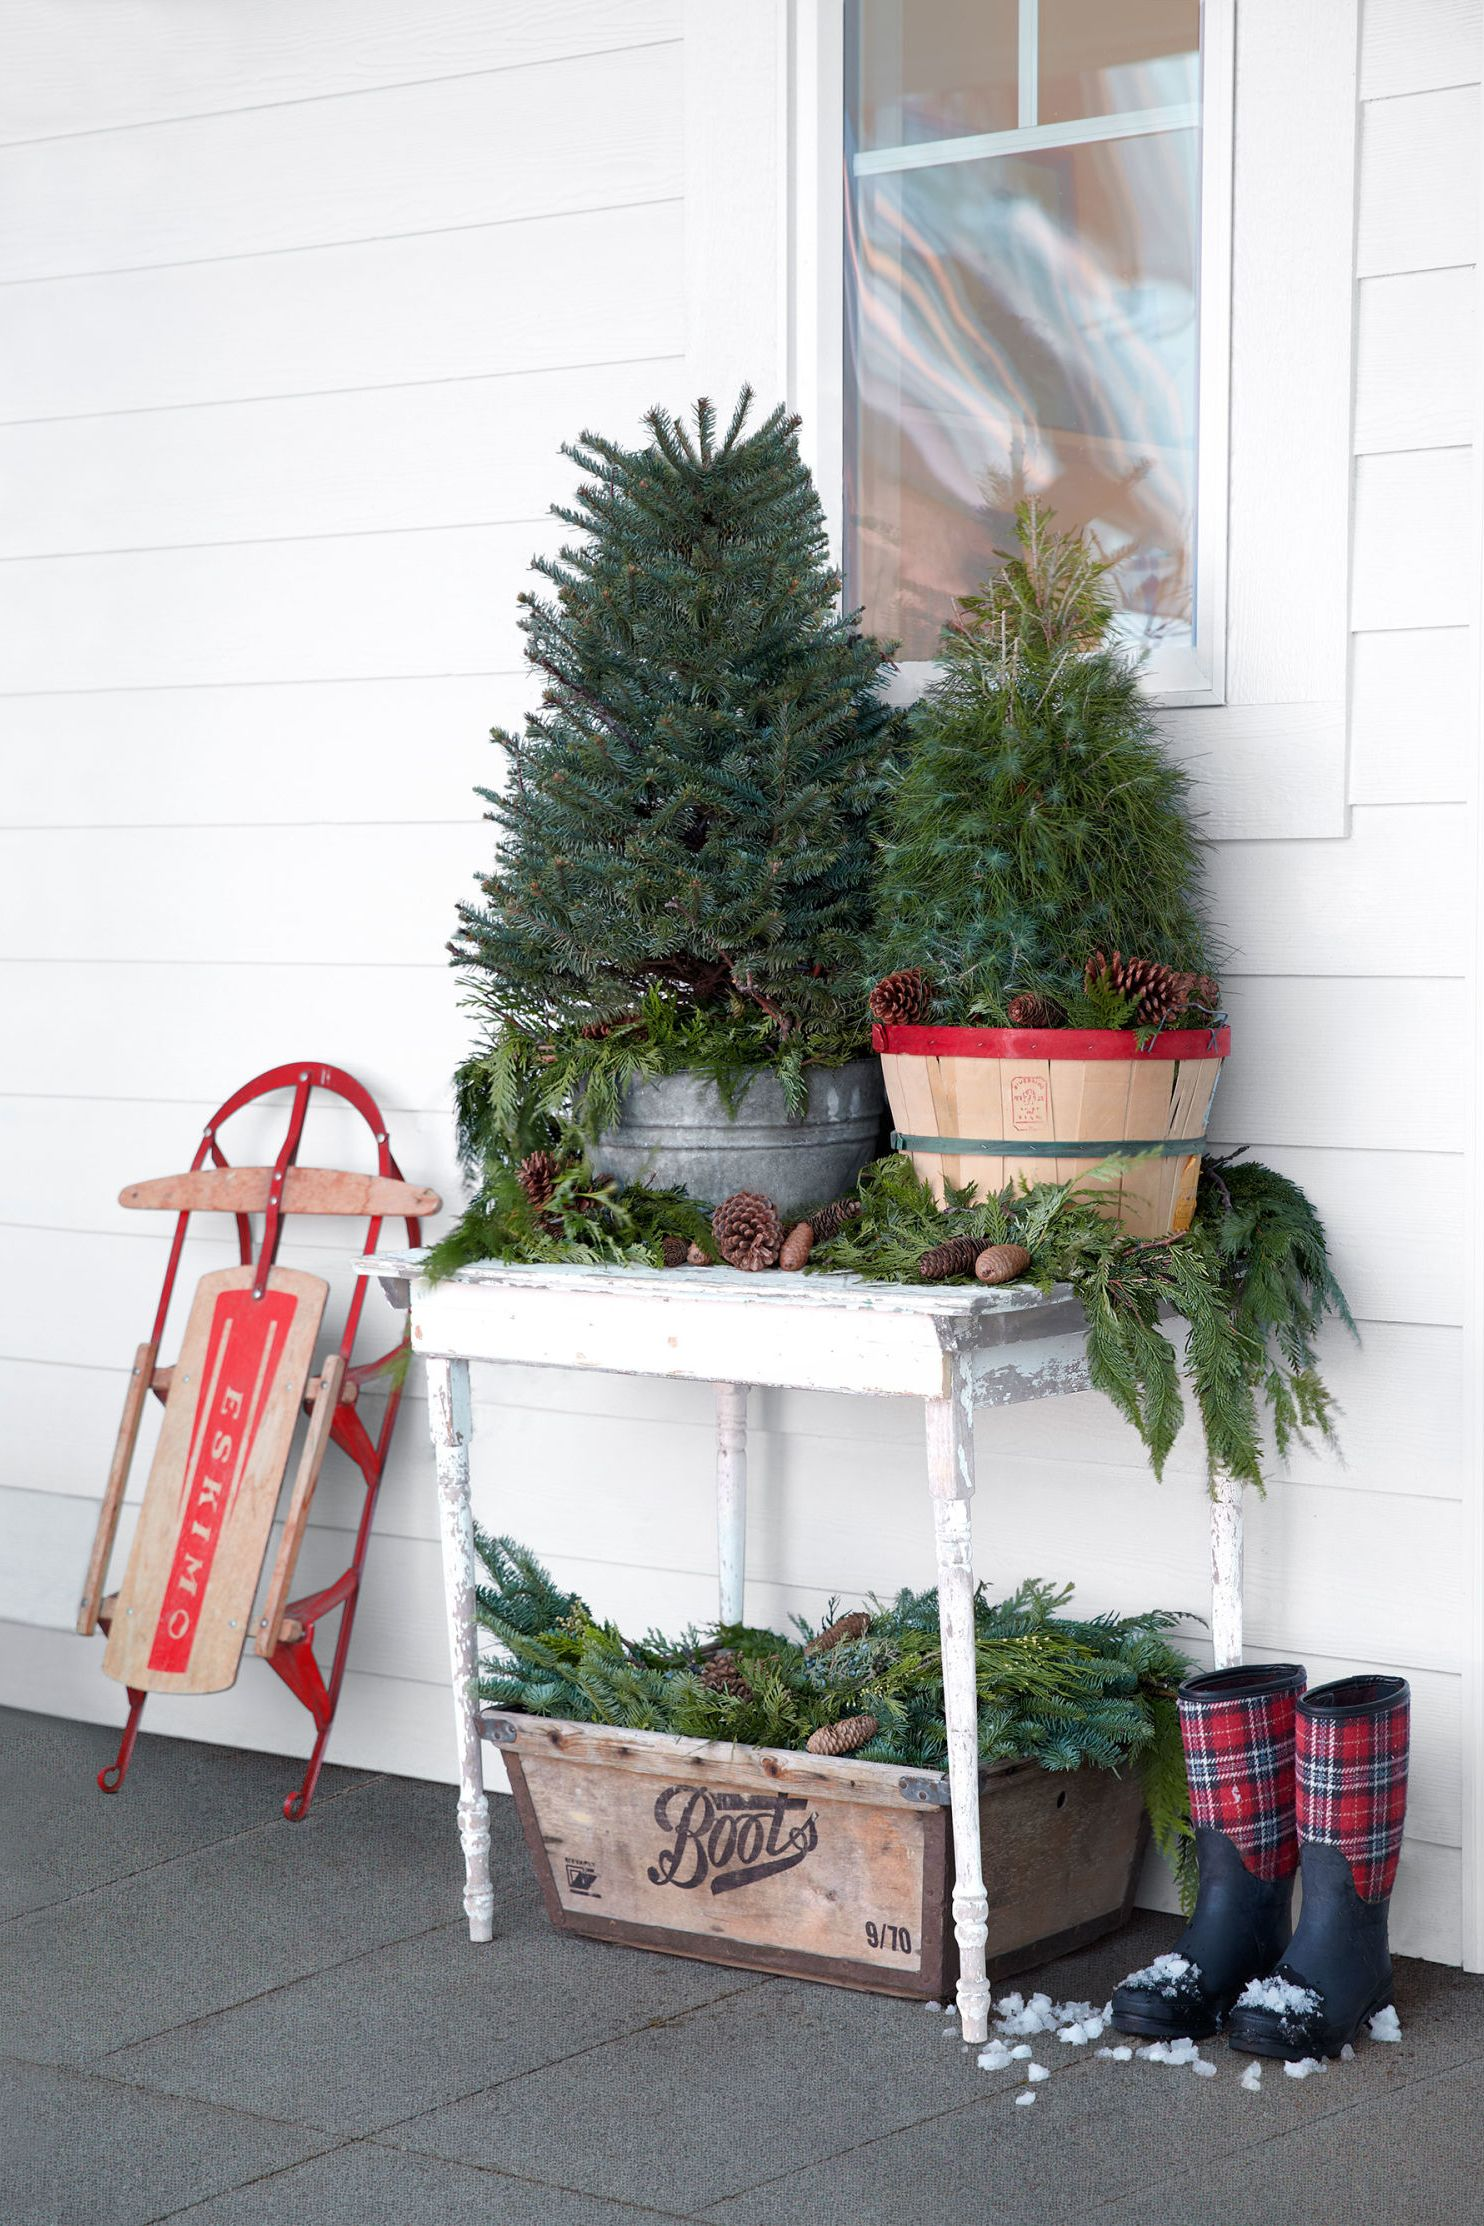 30 Outdoor Christmas Decorations That'll Get You Feeling All Festive